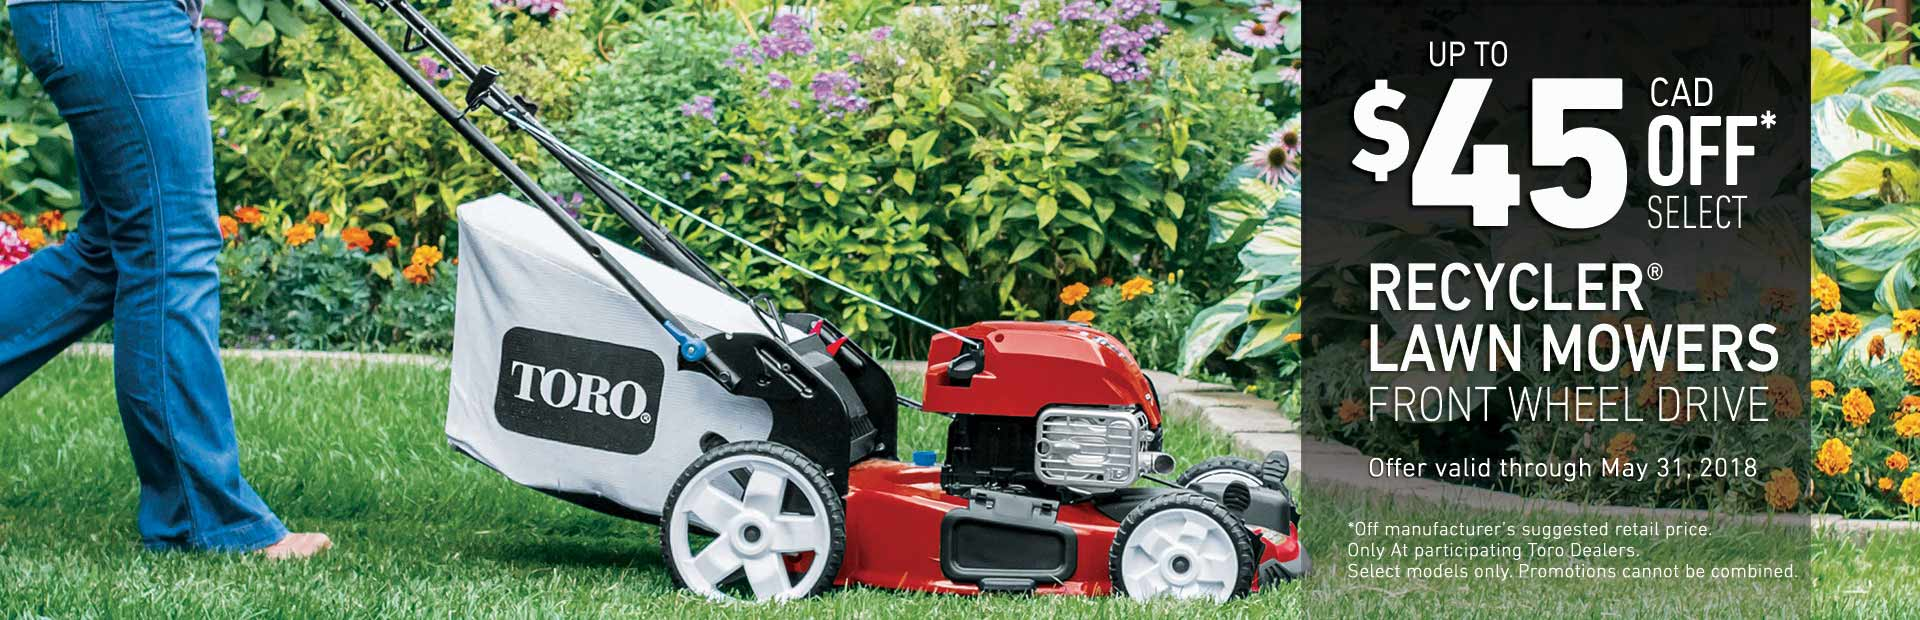 Toro: $45 off Select Recycler FWD Mowers